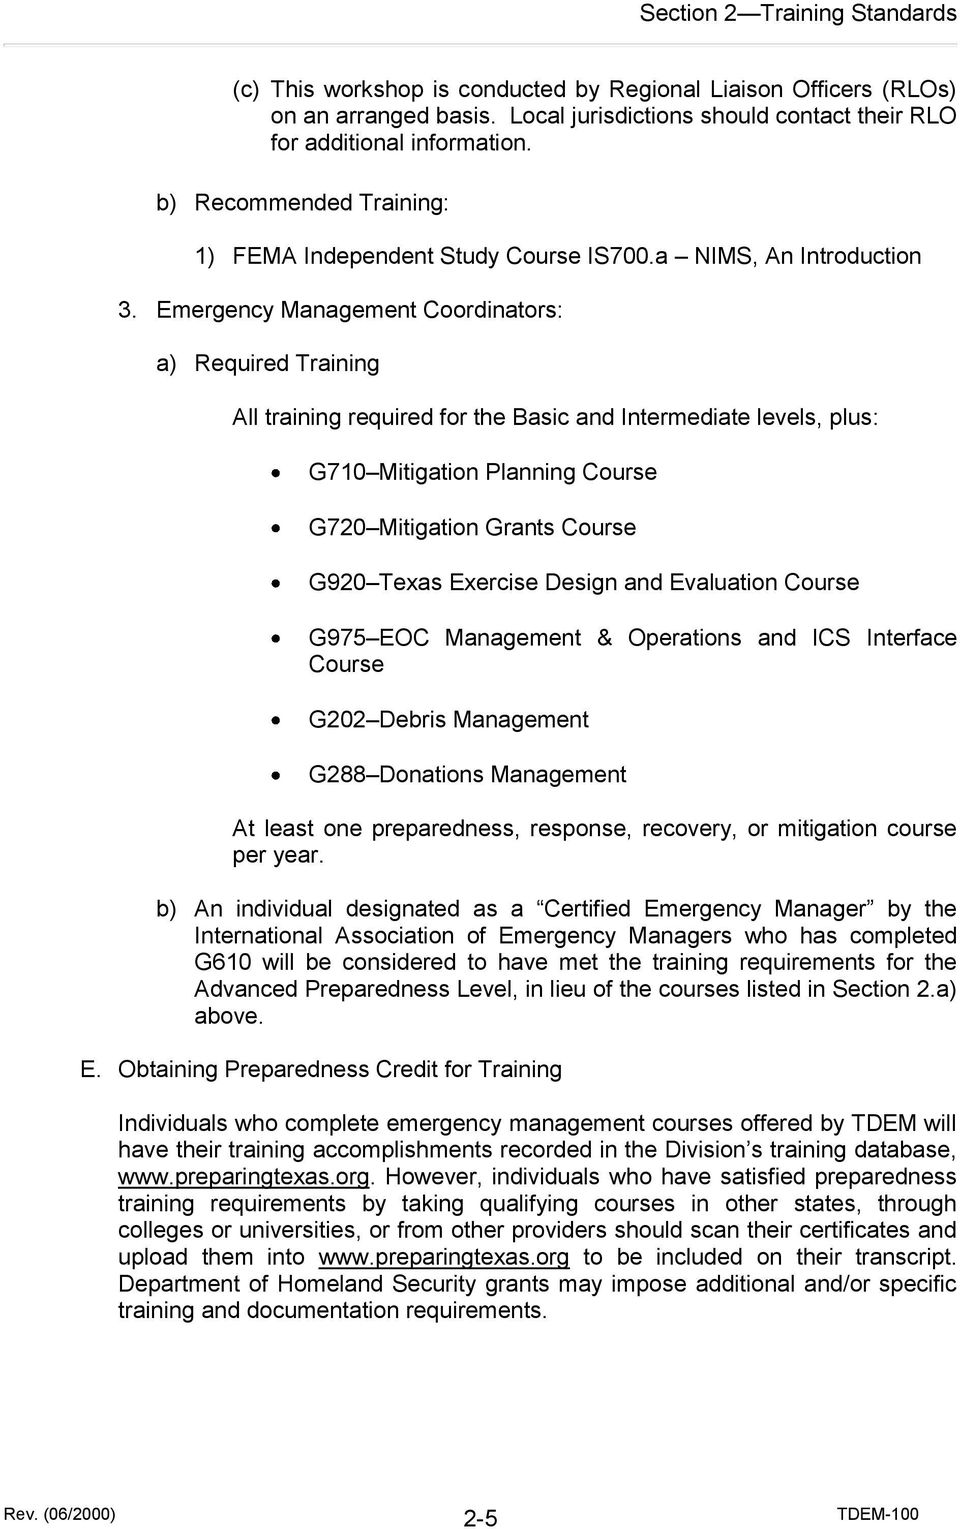 Emergency Management Coordinators: a) Required Training All training required for the Basic and Intermediate levels, plus: G710 Mitigation Planning Course G720 Mitigation Grants Course G920 Texas